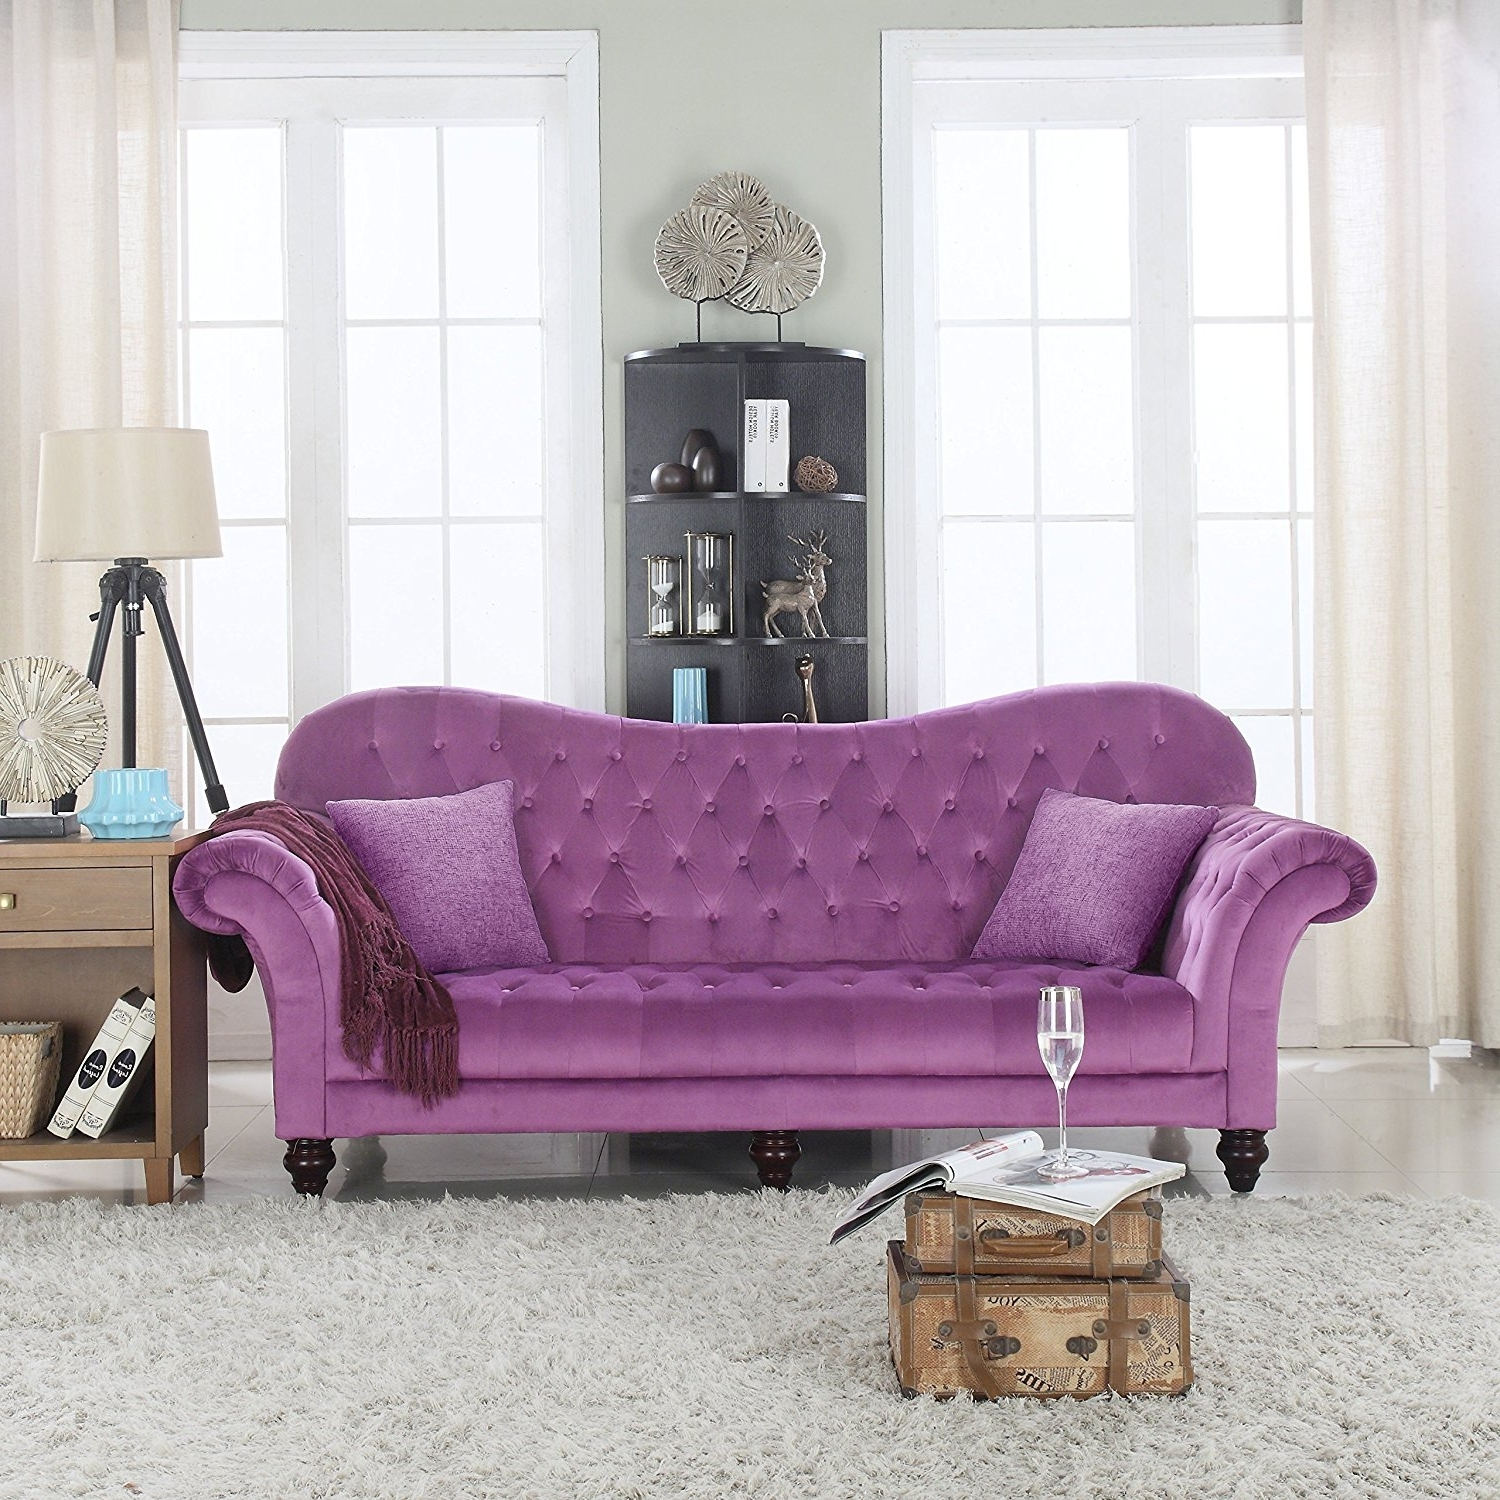 2018 Amazon: Classic Tufted Velvet Victorian Sofa (Purple): Kitchen Within Velvet Purple Sofas (View 10 of 15)